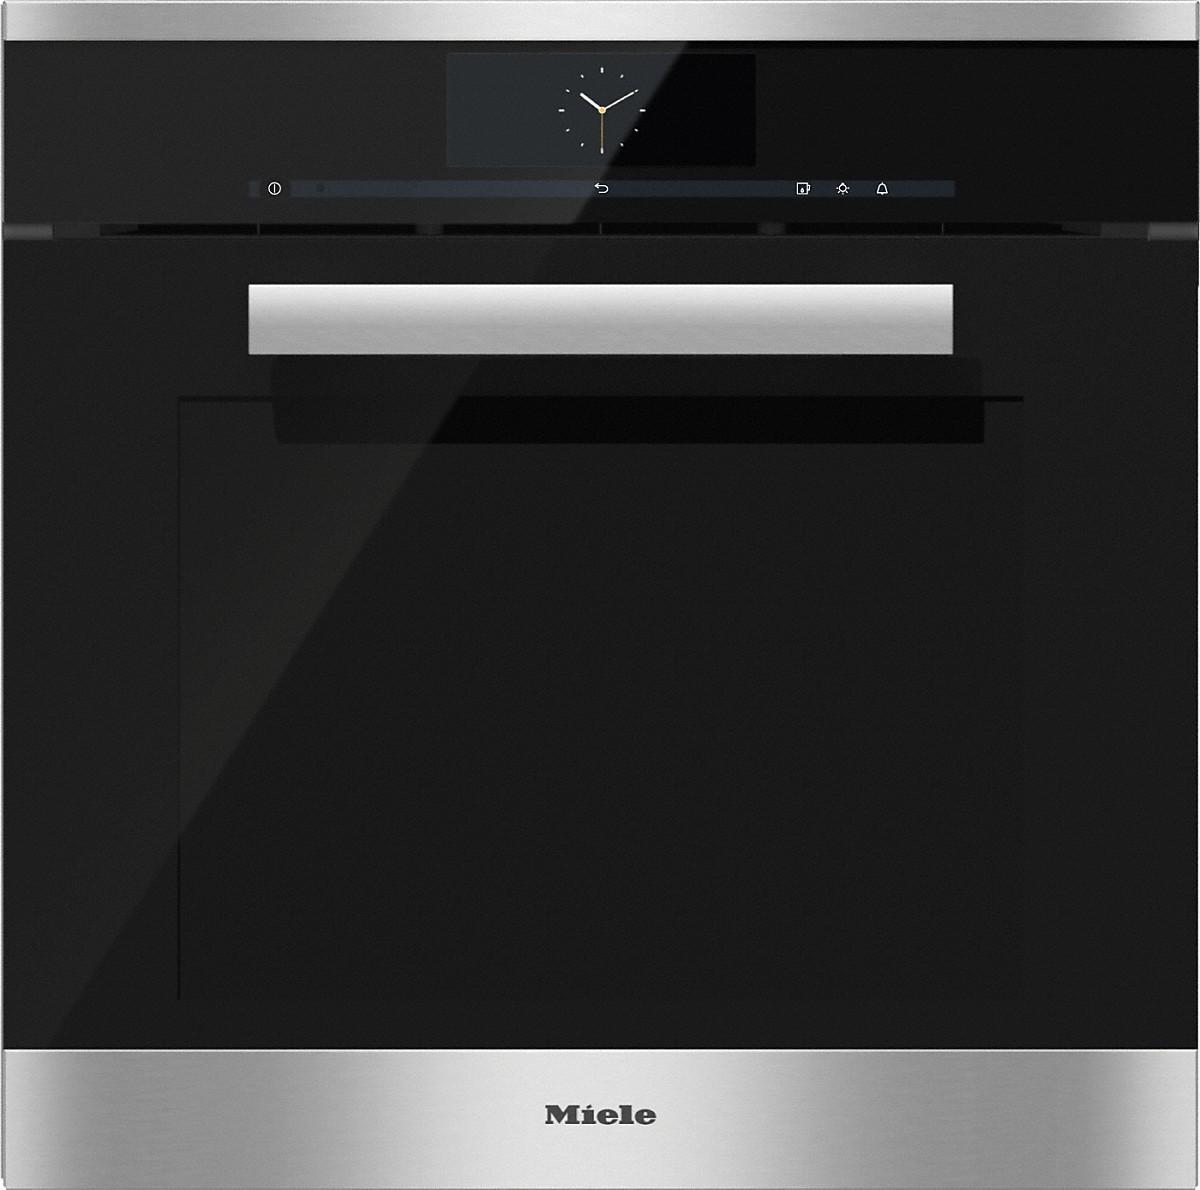 Four vapeur miele dgcxxl6860in electromenager grossiste - Table a repasser miele ...